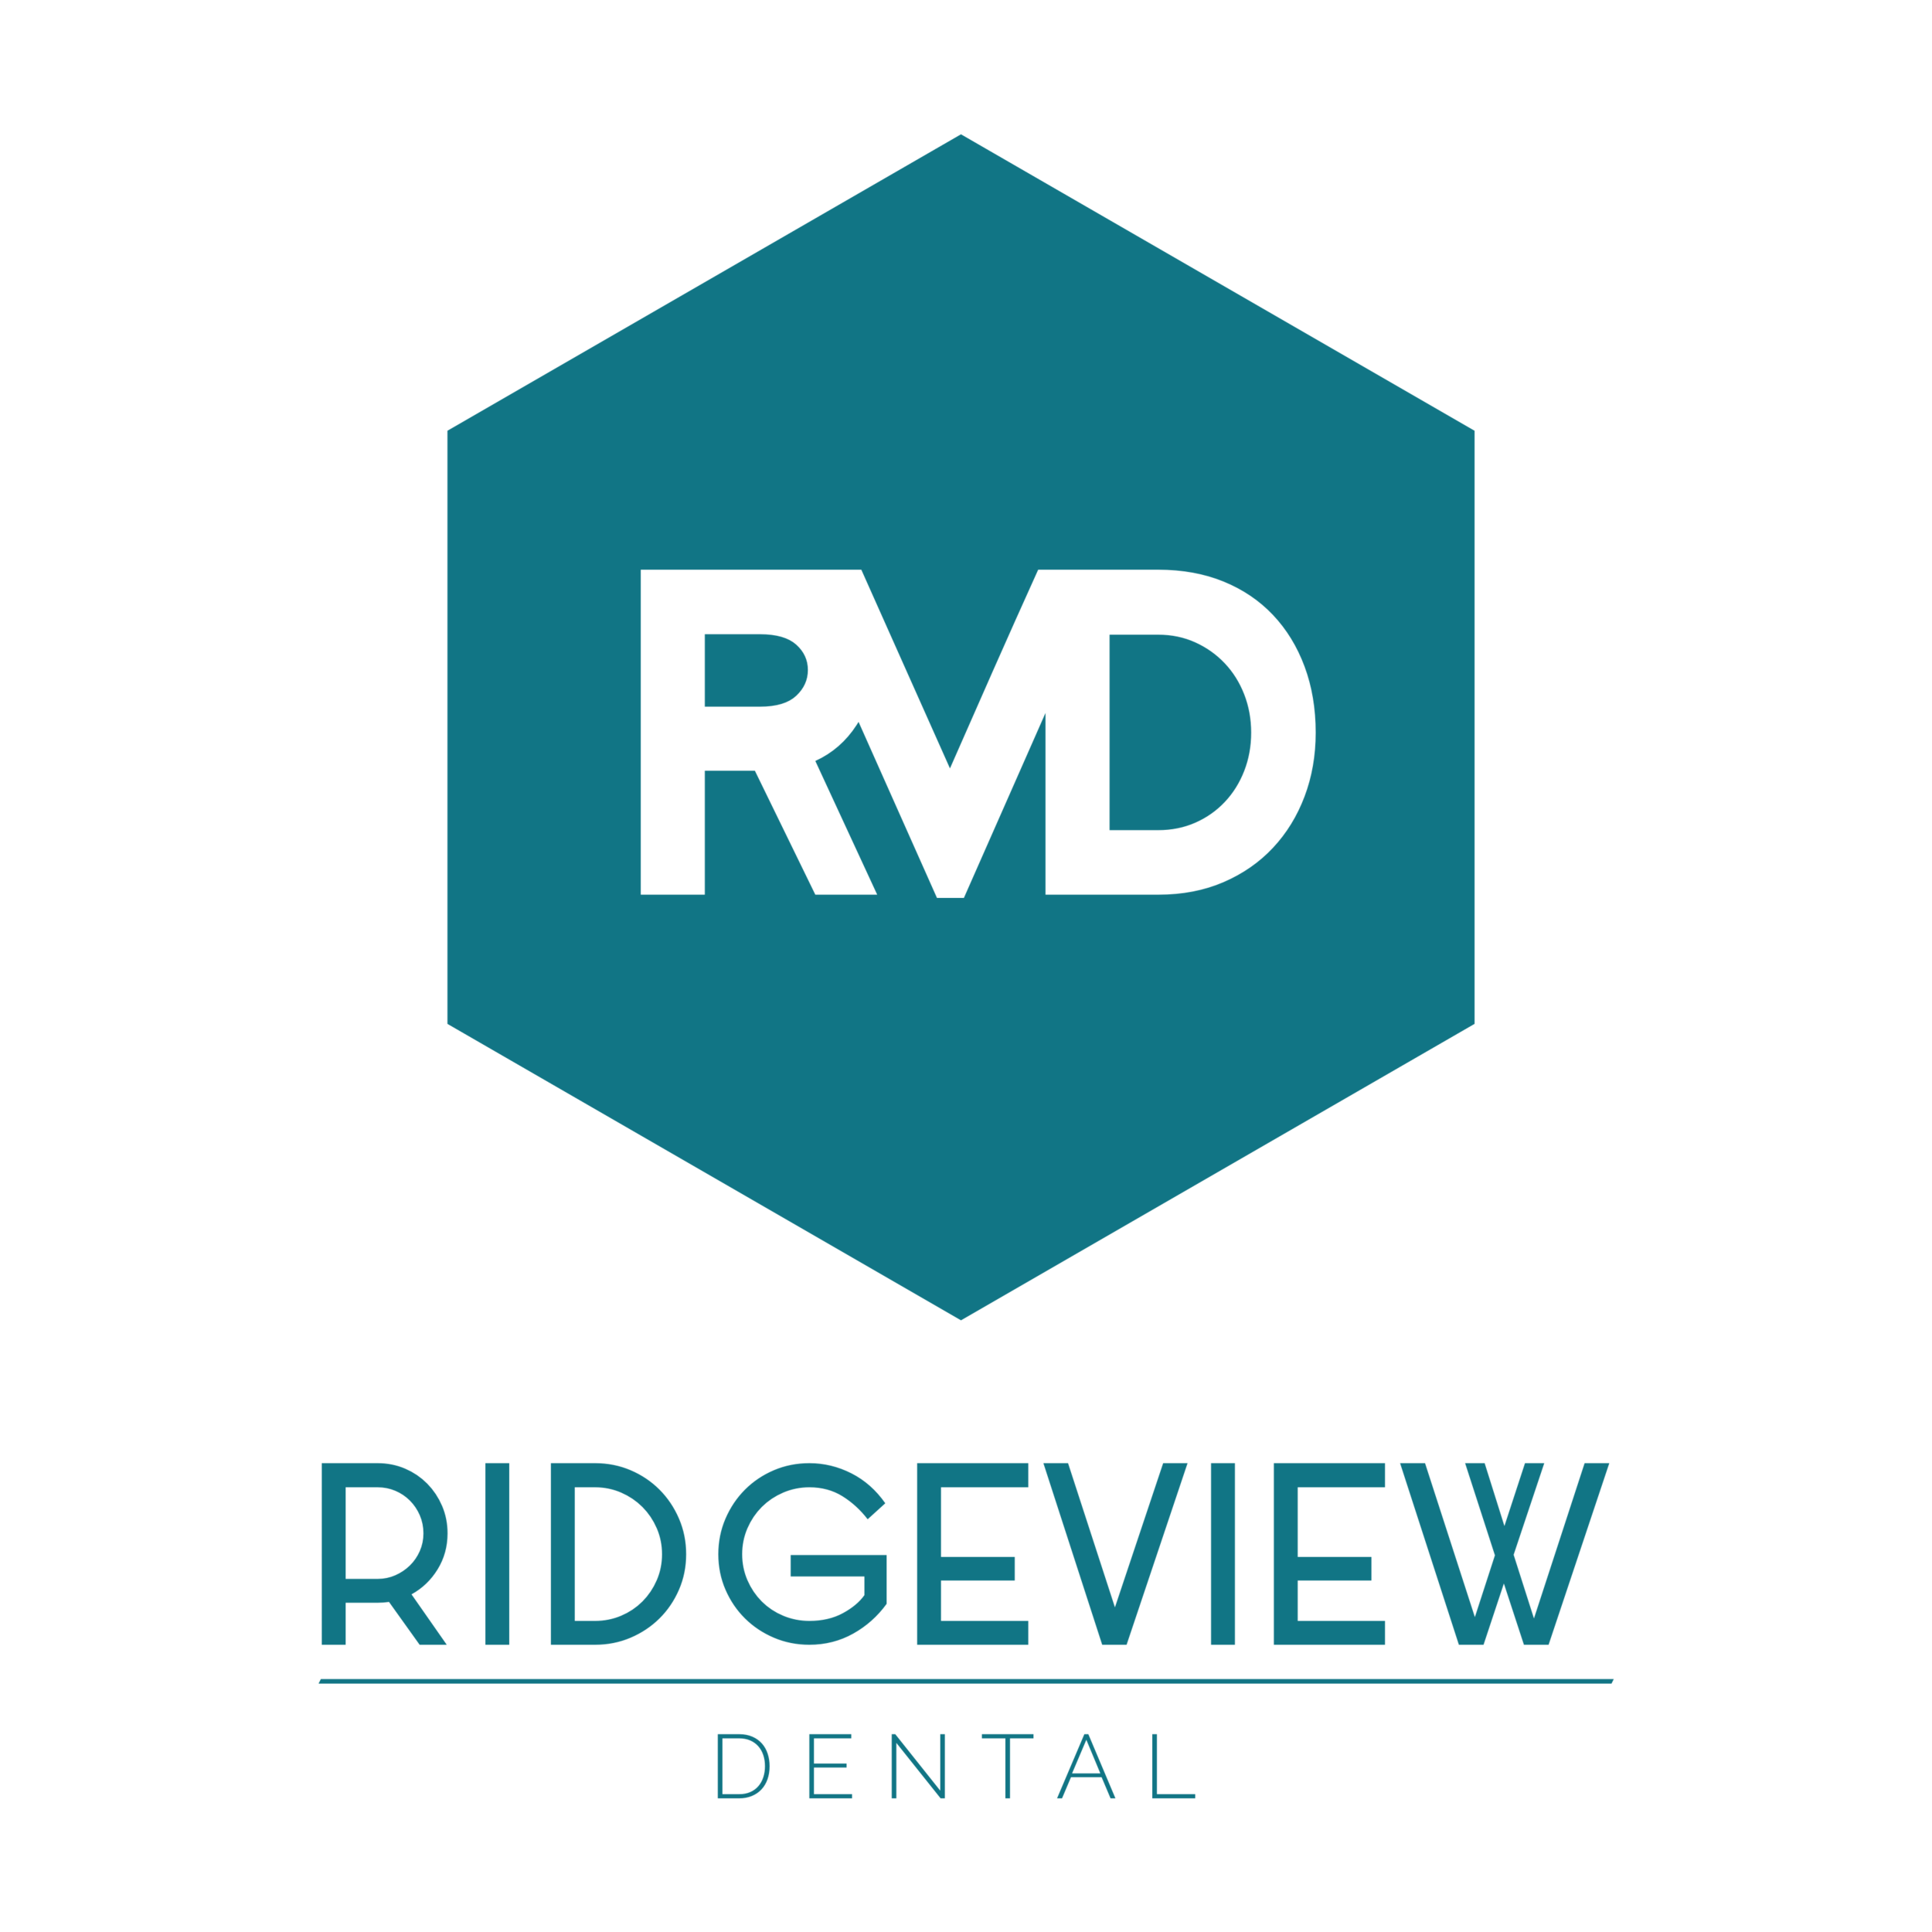 5616 S Gibraltar Way Unit E  Centennial, Colorado 80015  (303)627-4884   www.ridgeview.dental